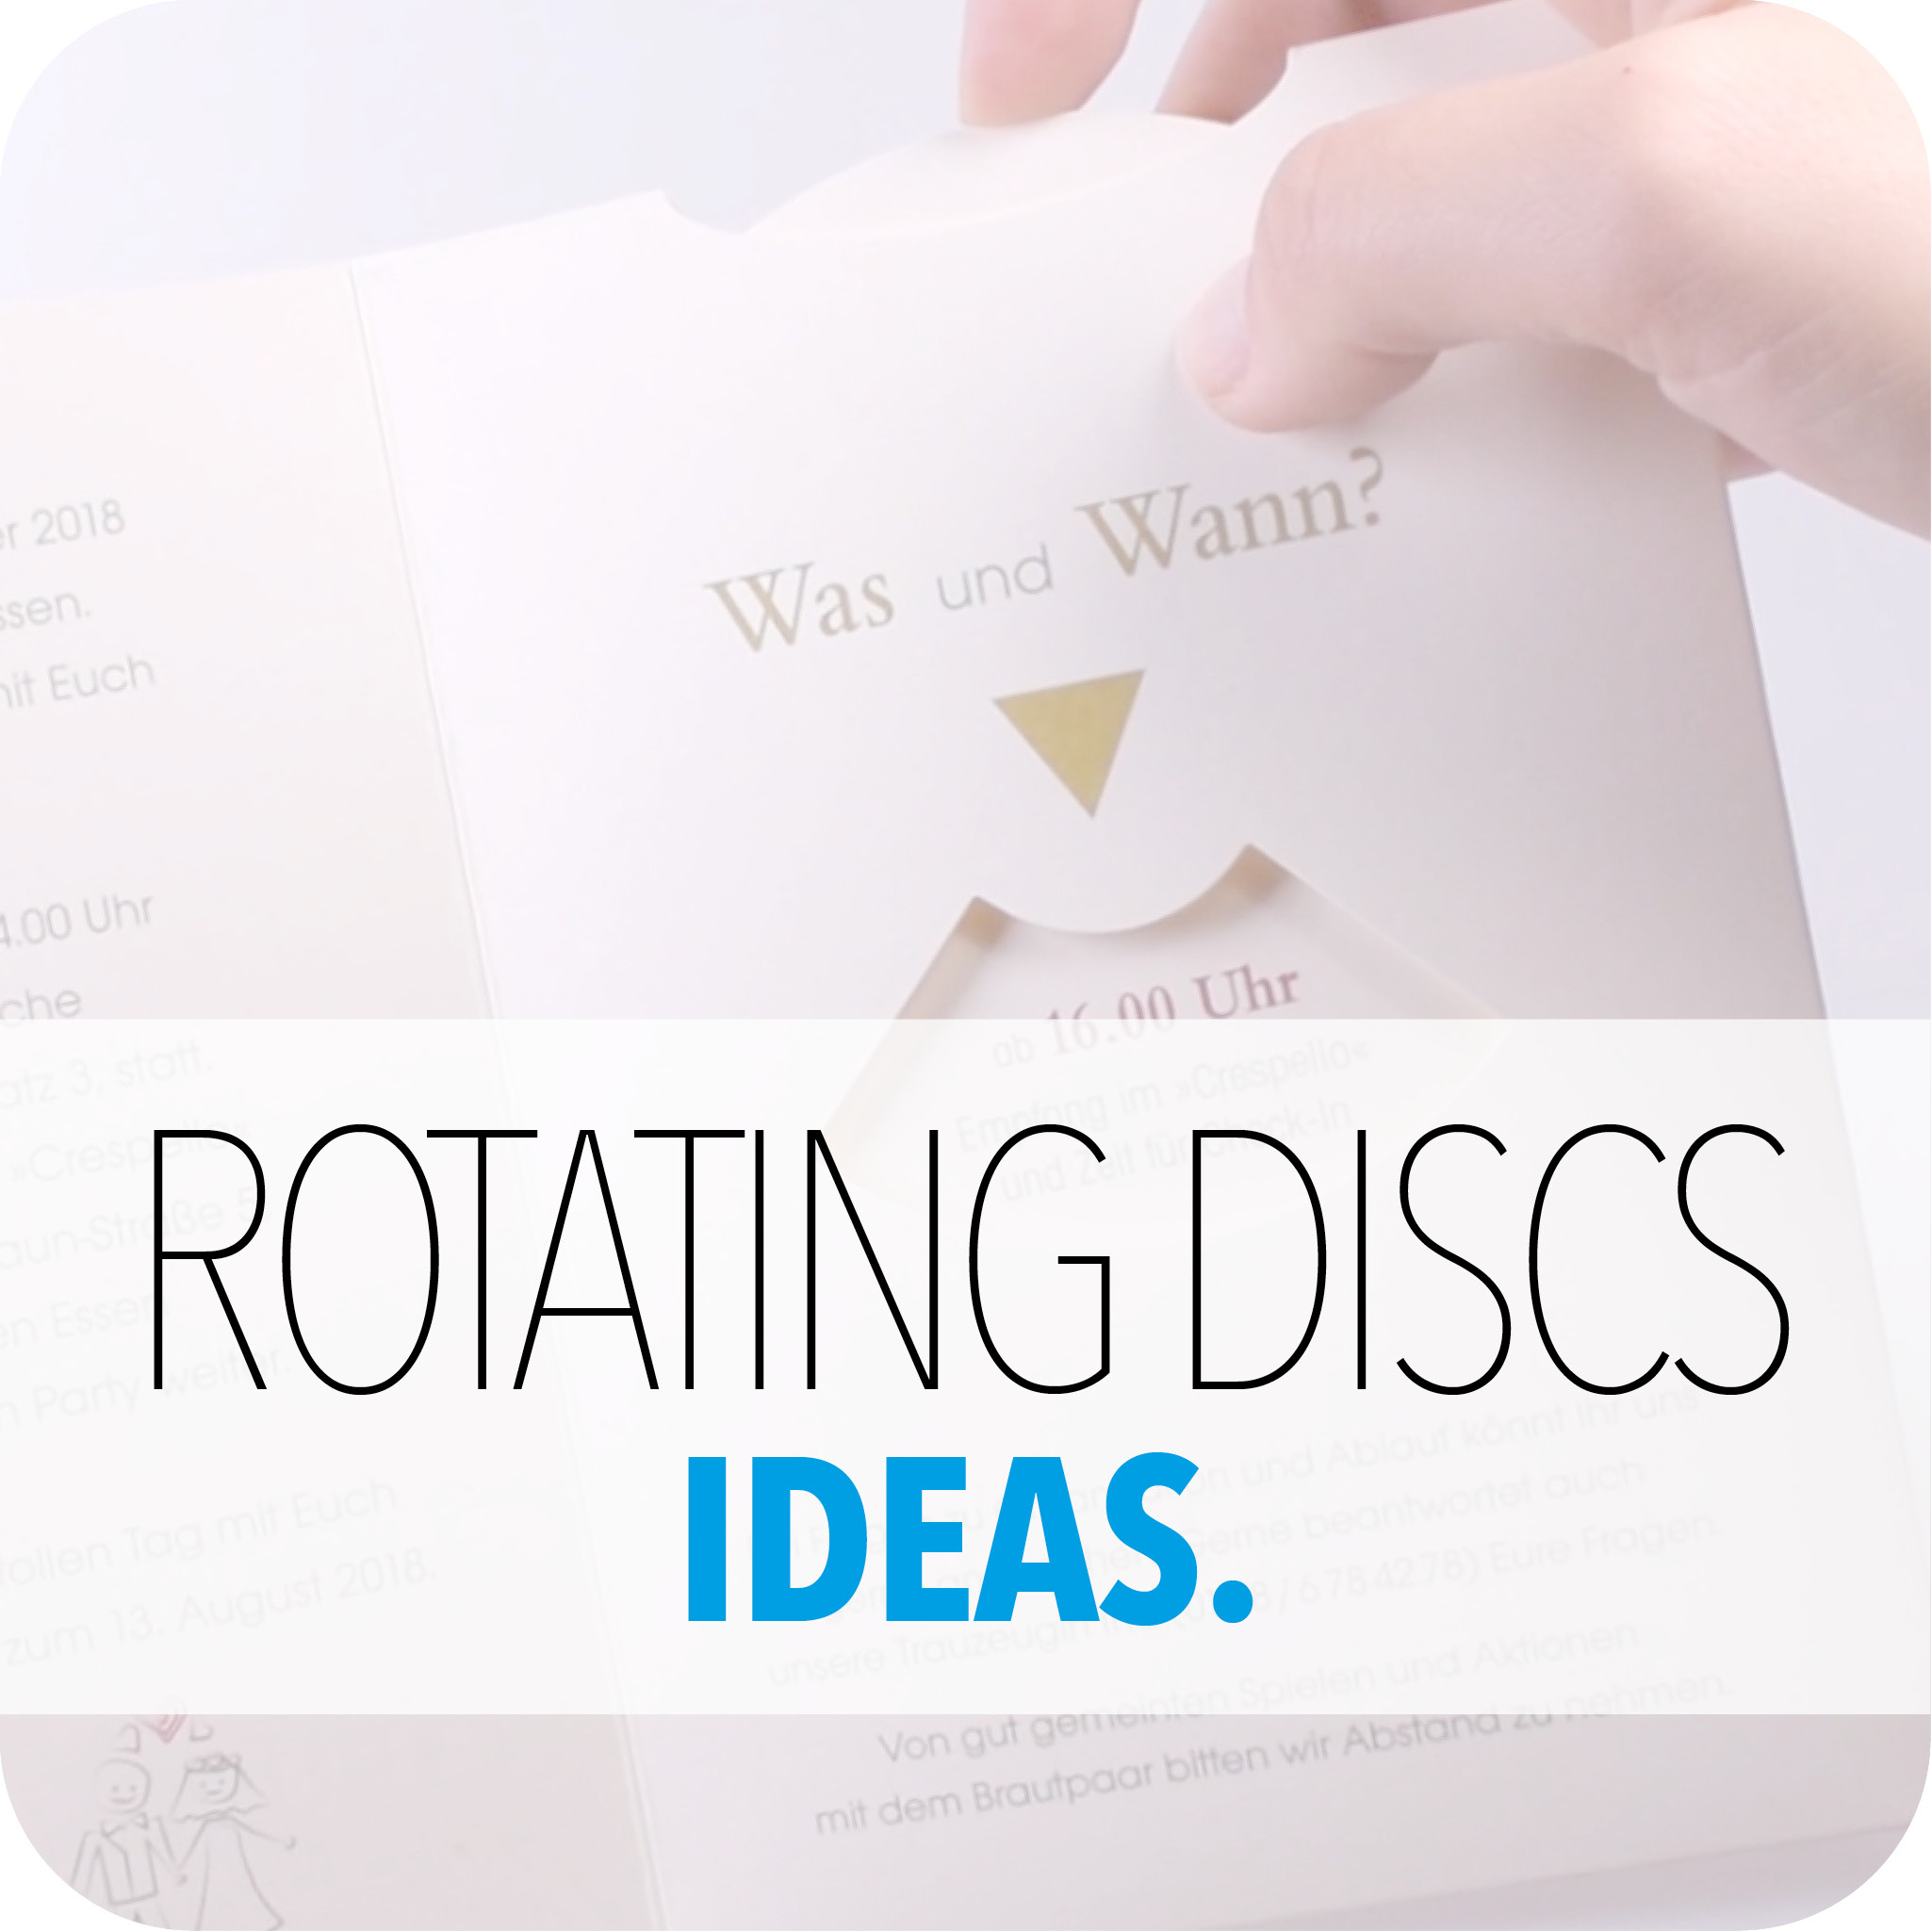 ROTATING DISCS IDEAS